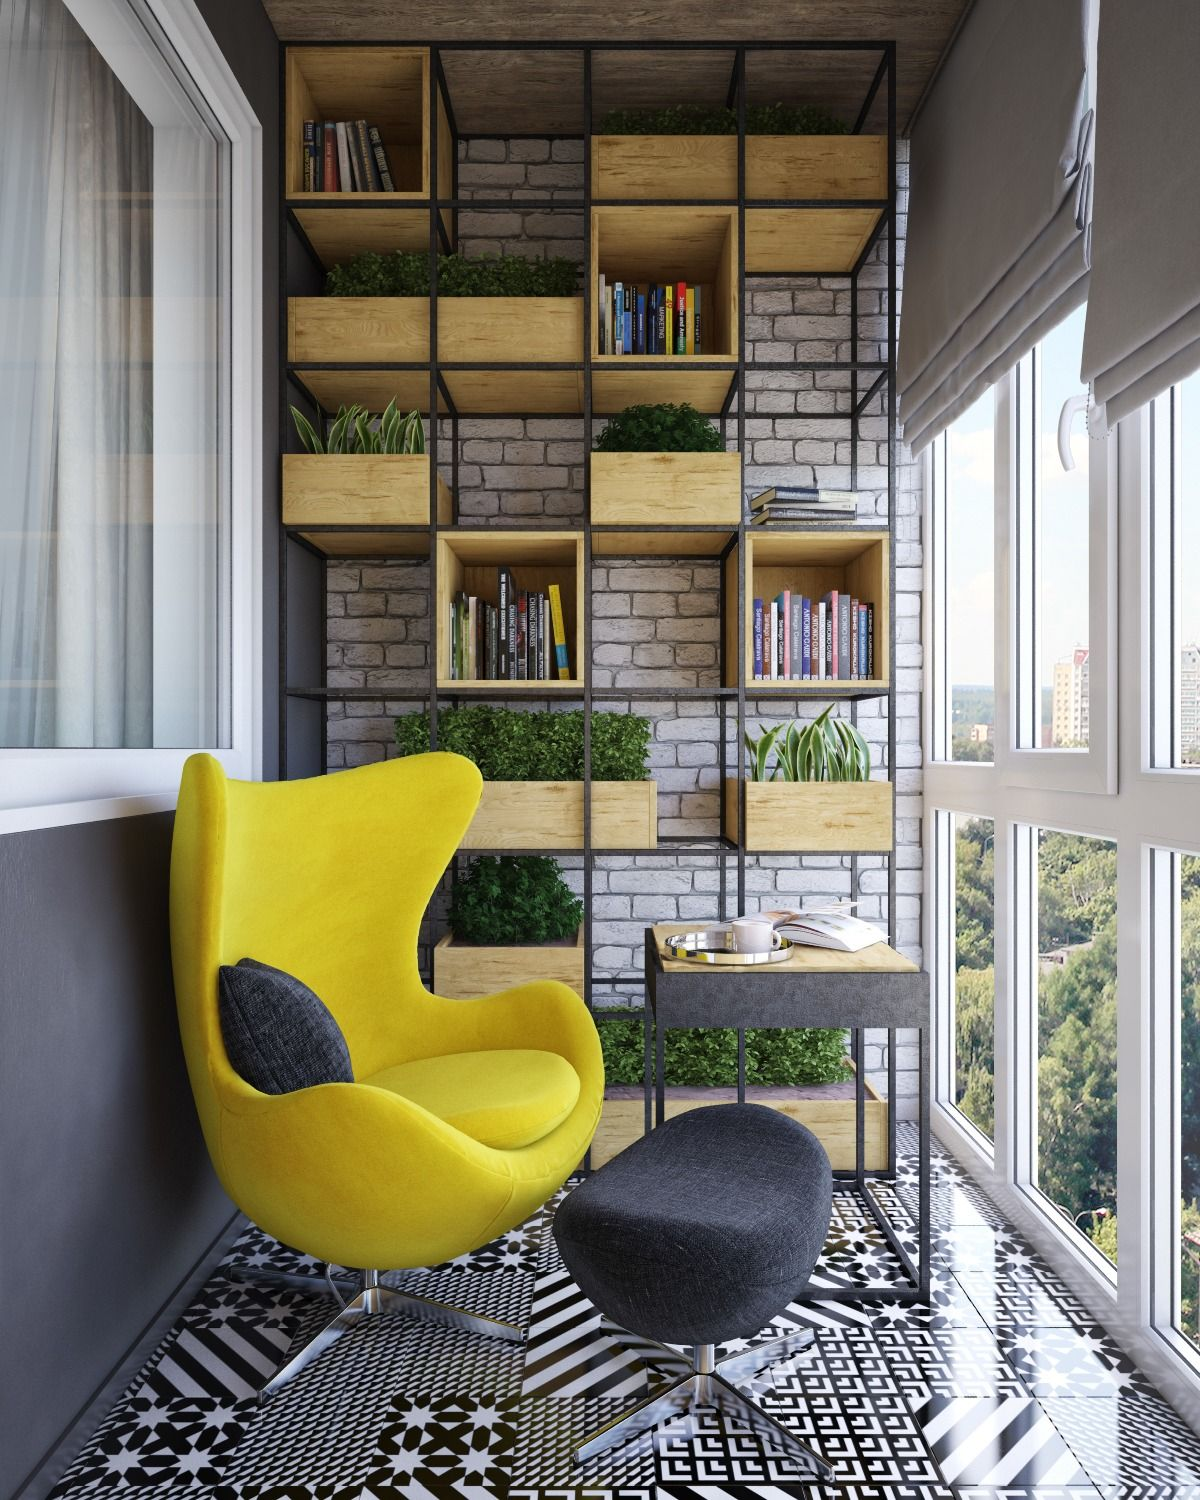 Modern Yellow Chair on Terrace  Apartment balcony decorating